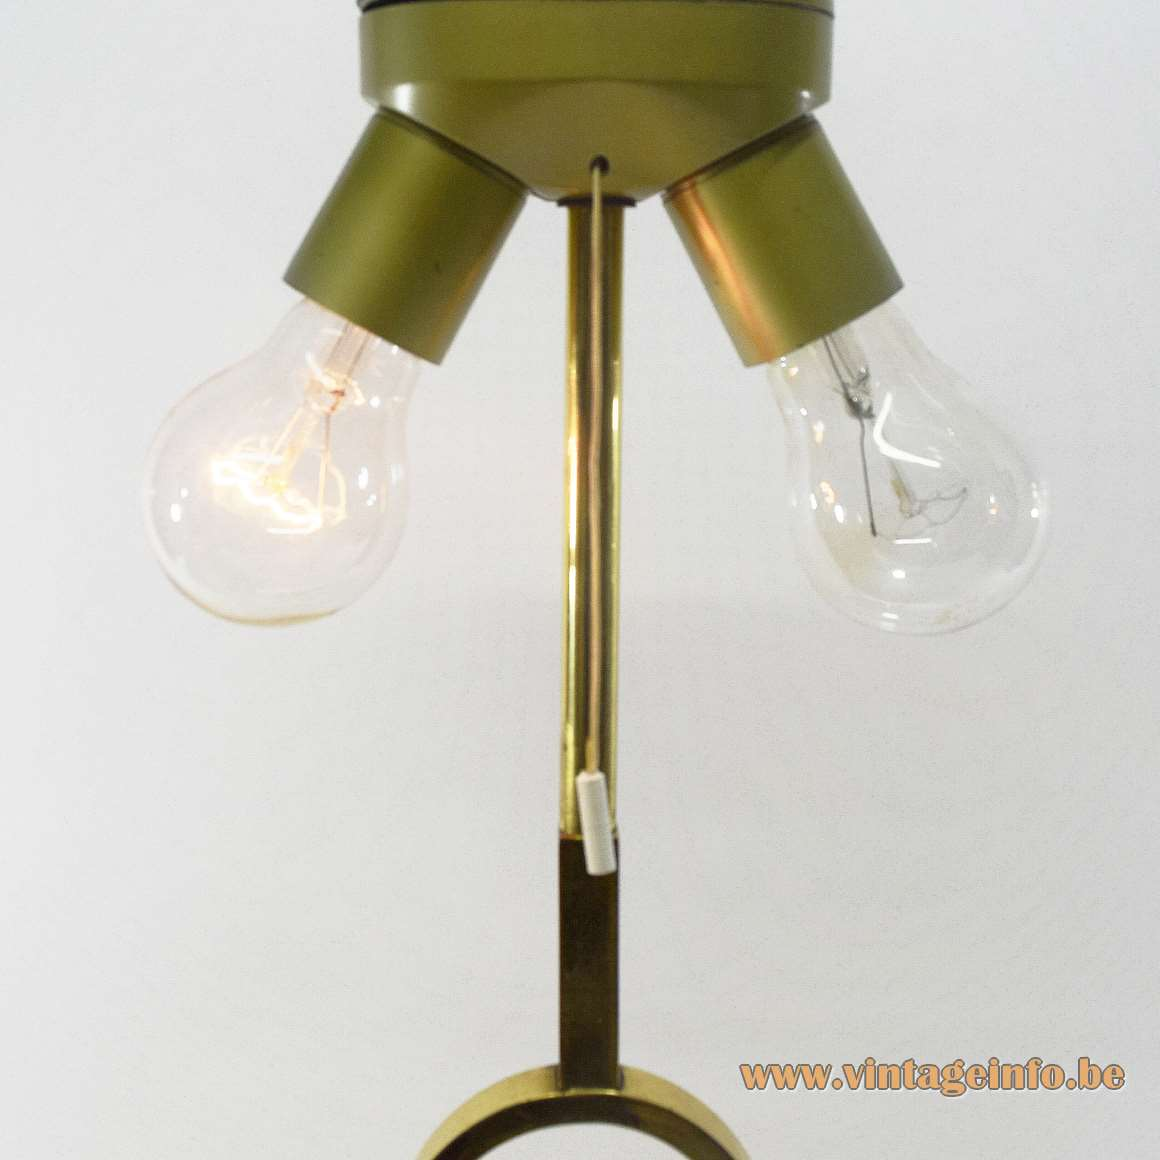 Brass eternal flame table lamp square base and square curved rod fabric lampshade Deknudt Lighting Deerlijk Belgium